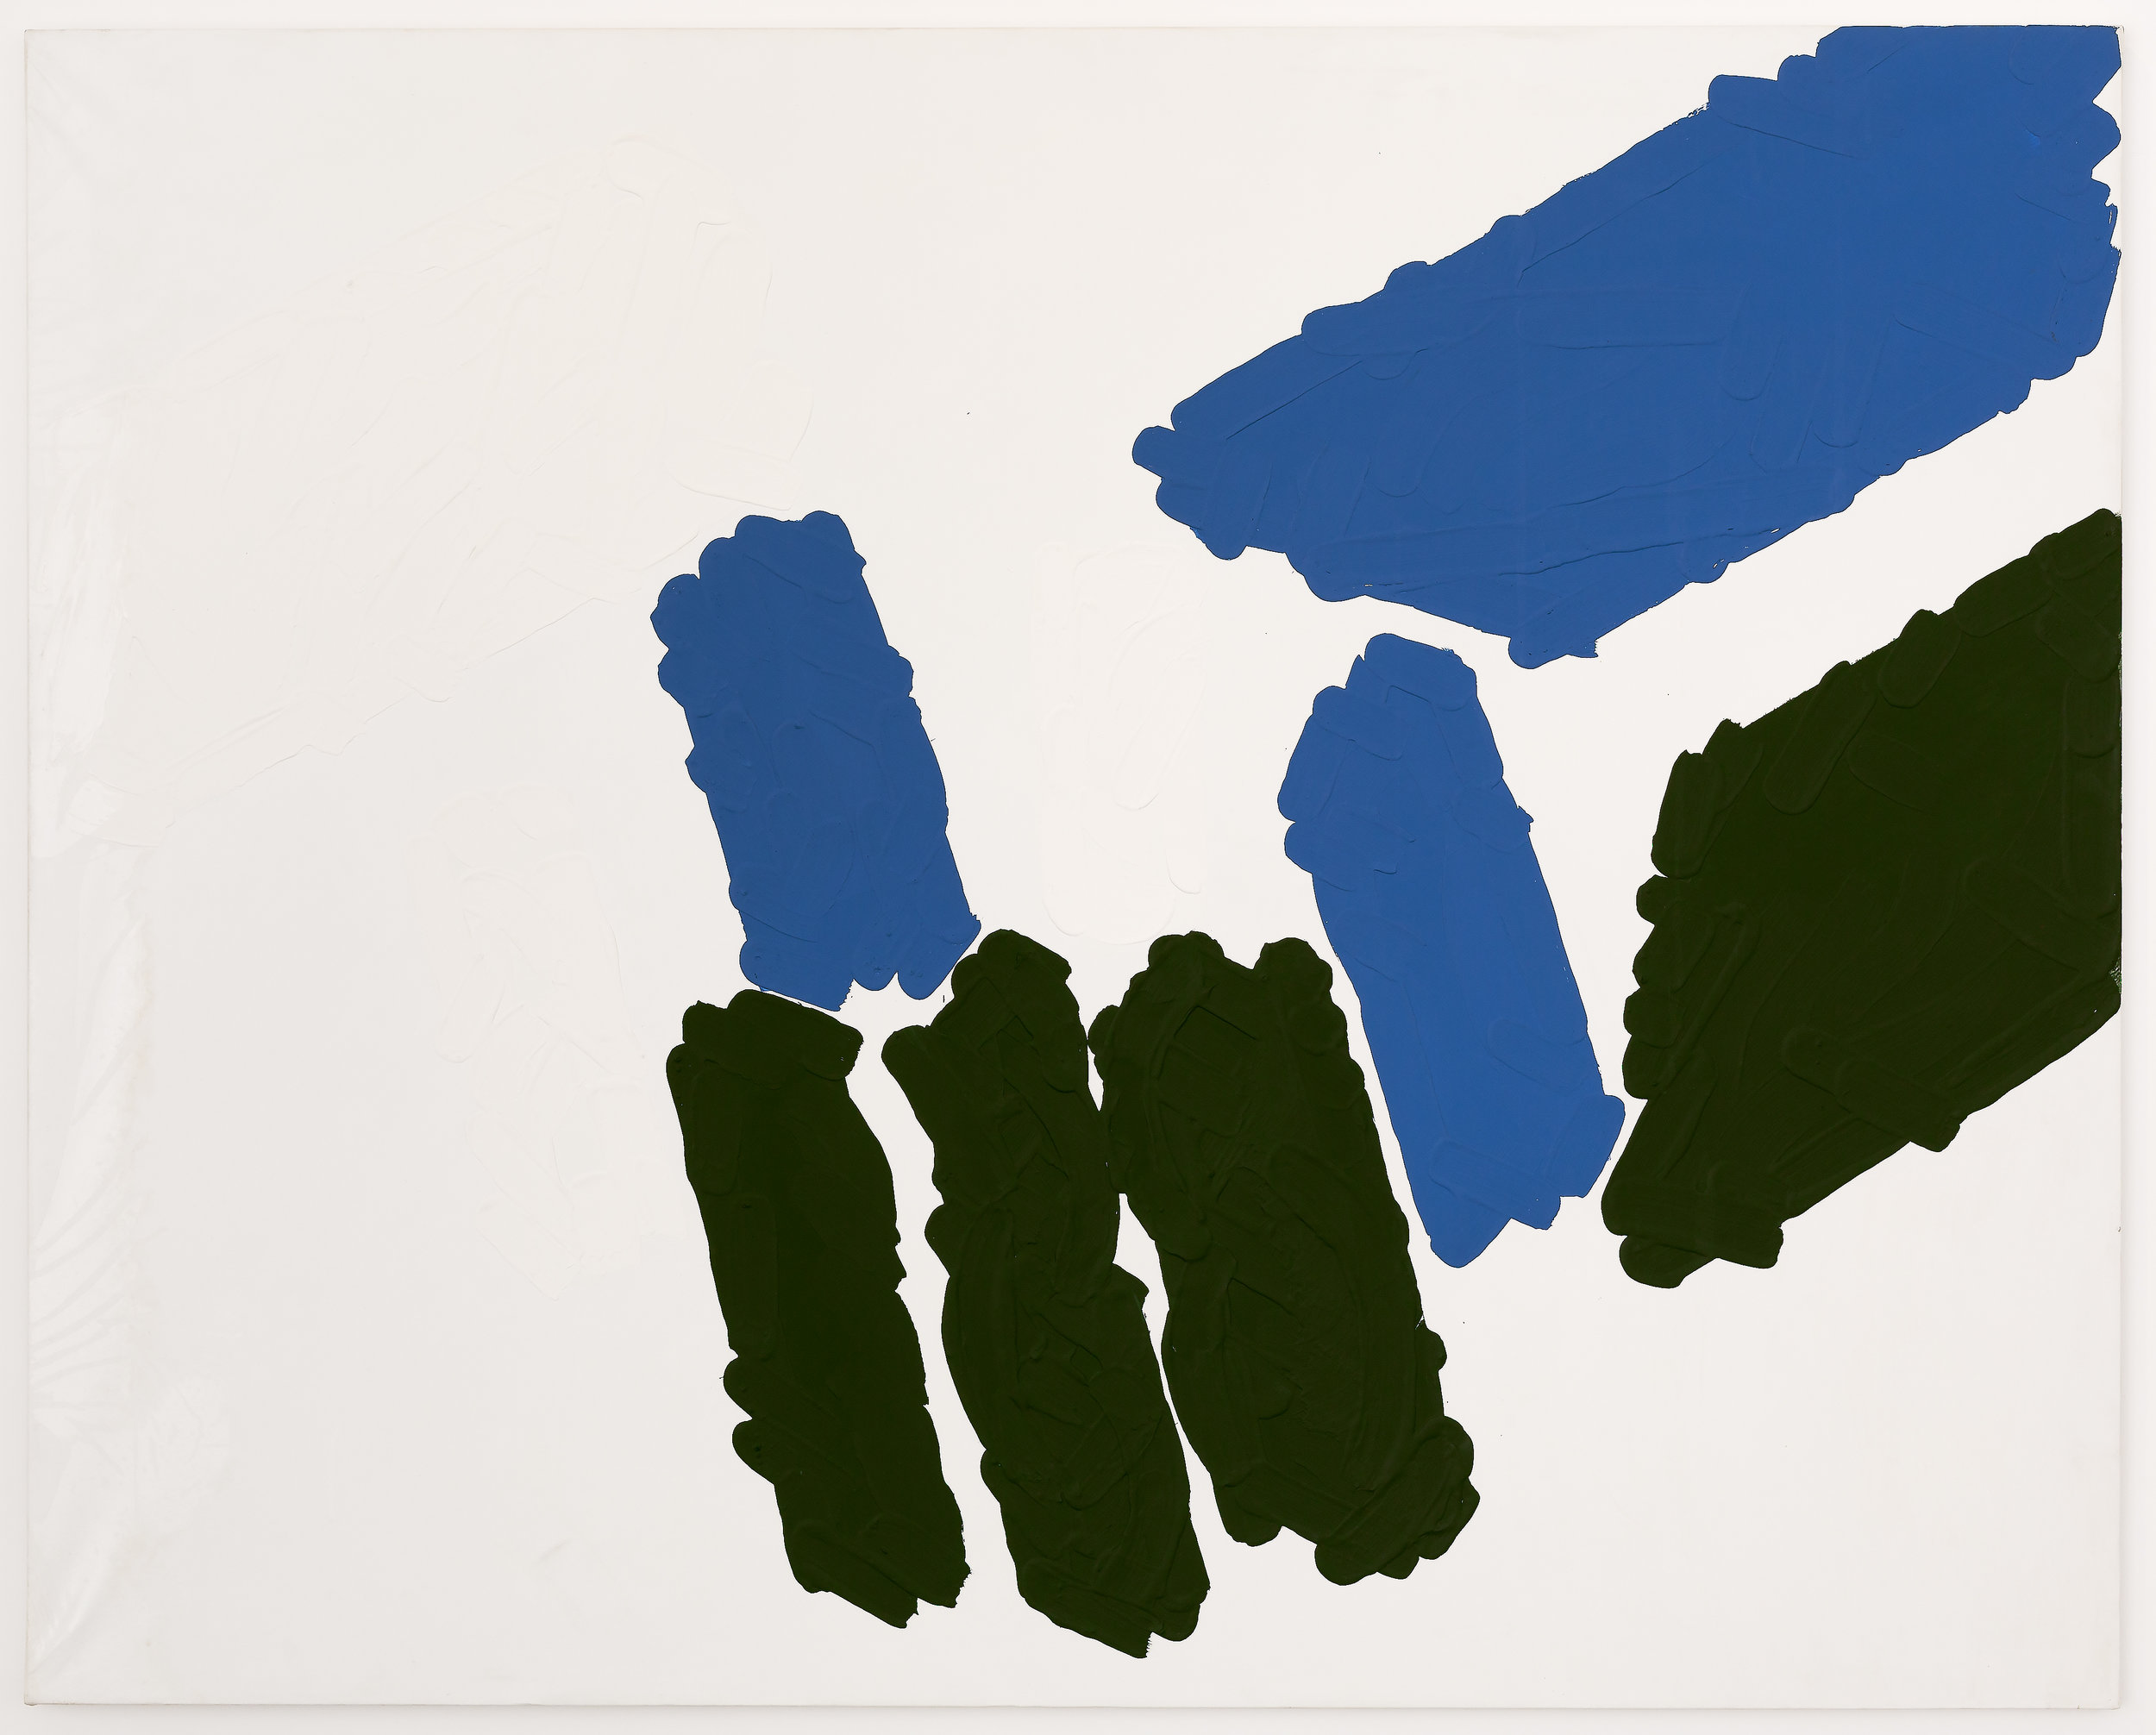 Untitled. Acrylic on canvas, 1978. Courtesy of Jean-Paul Najar Foundation (JPNF)